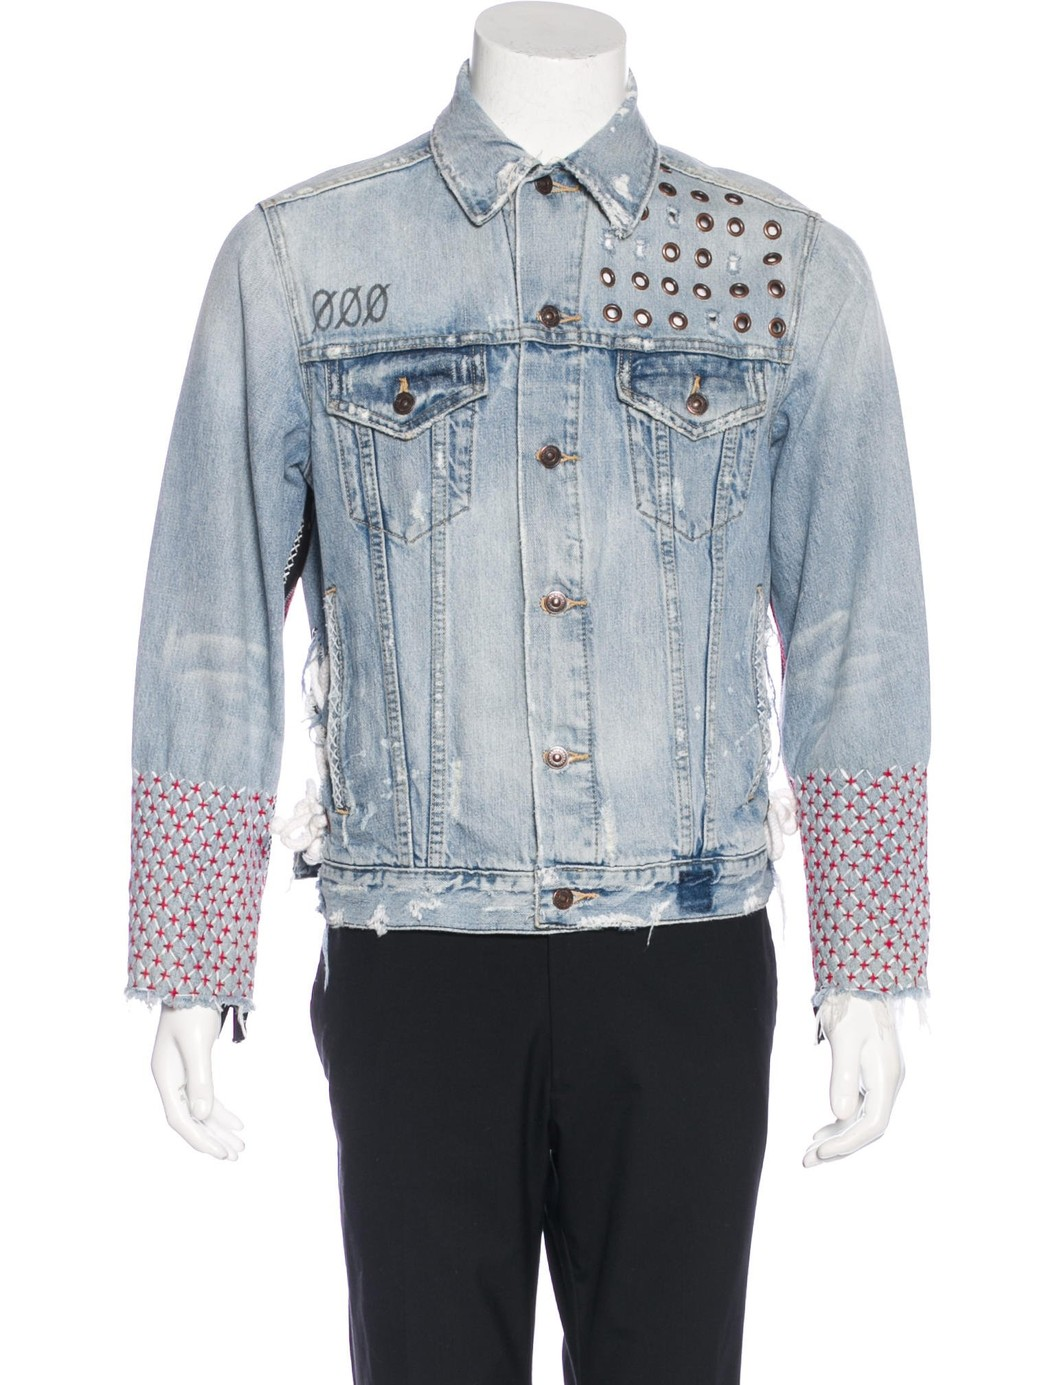 Nina Pilár deconstructed trucker jacket (M) from Jaden Smith, $225.